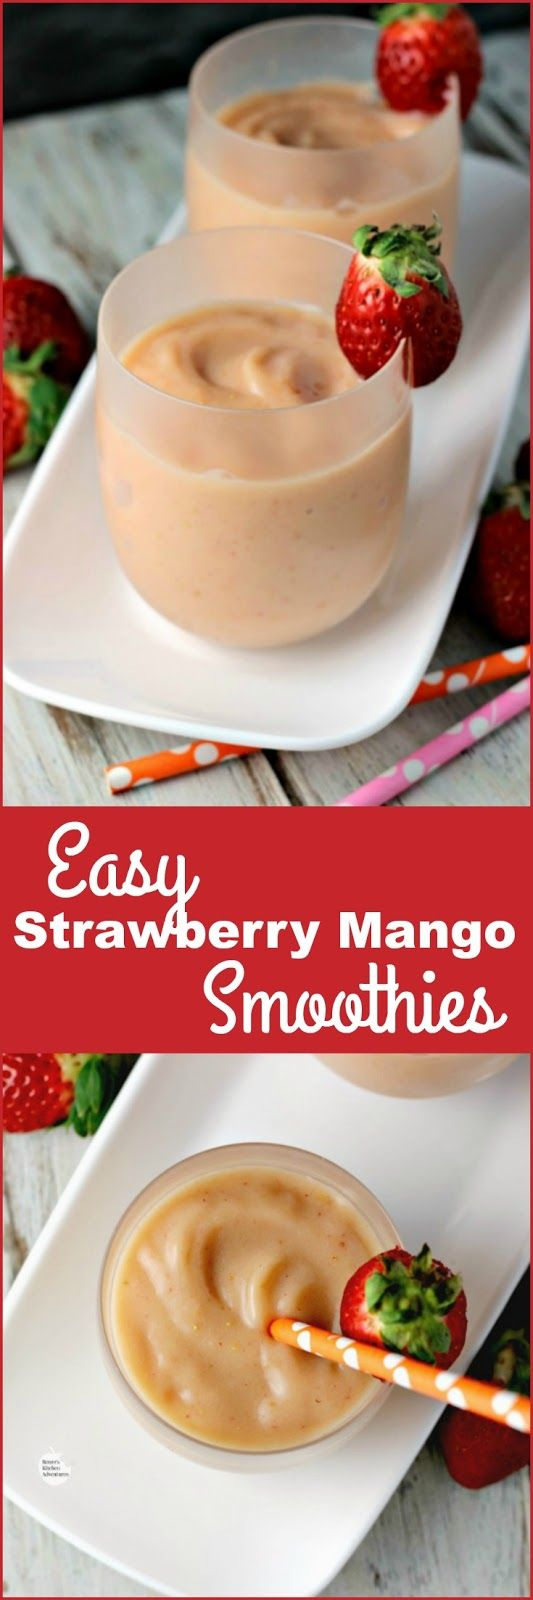 Easy Strawberry Mango Smoothies | by Renee's Kitchen Adventures - Easy recipe for a dairy-free smoothie using sweet strawberries and mangoes. Healthy snack or breakfast.